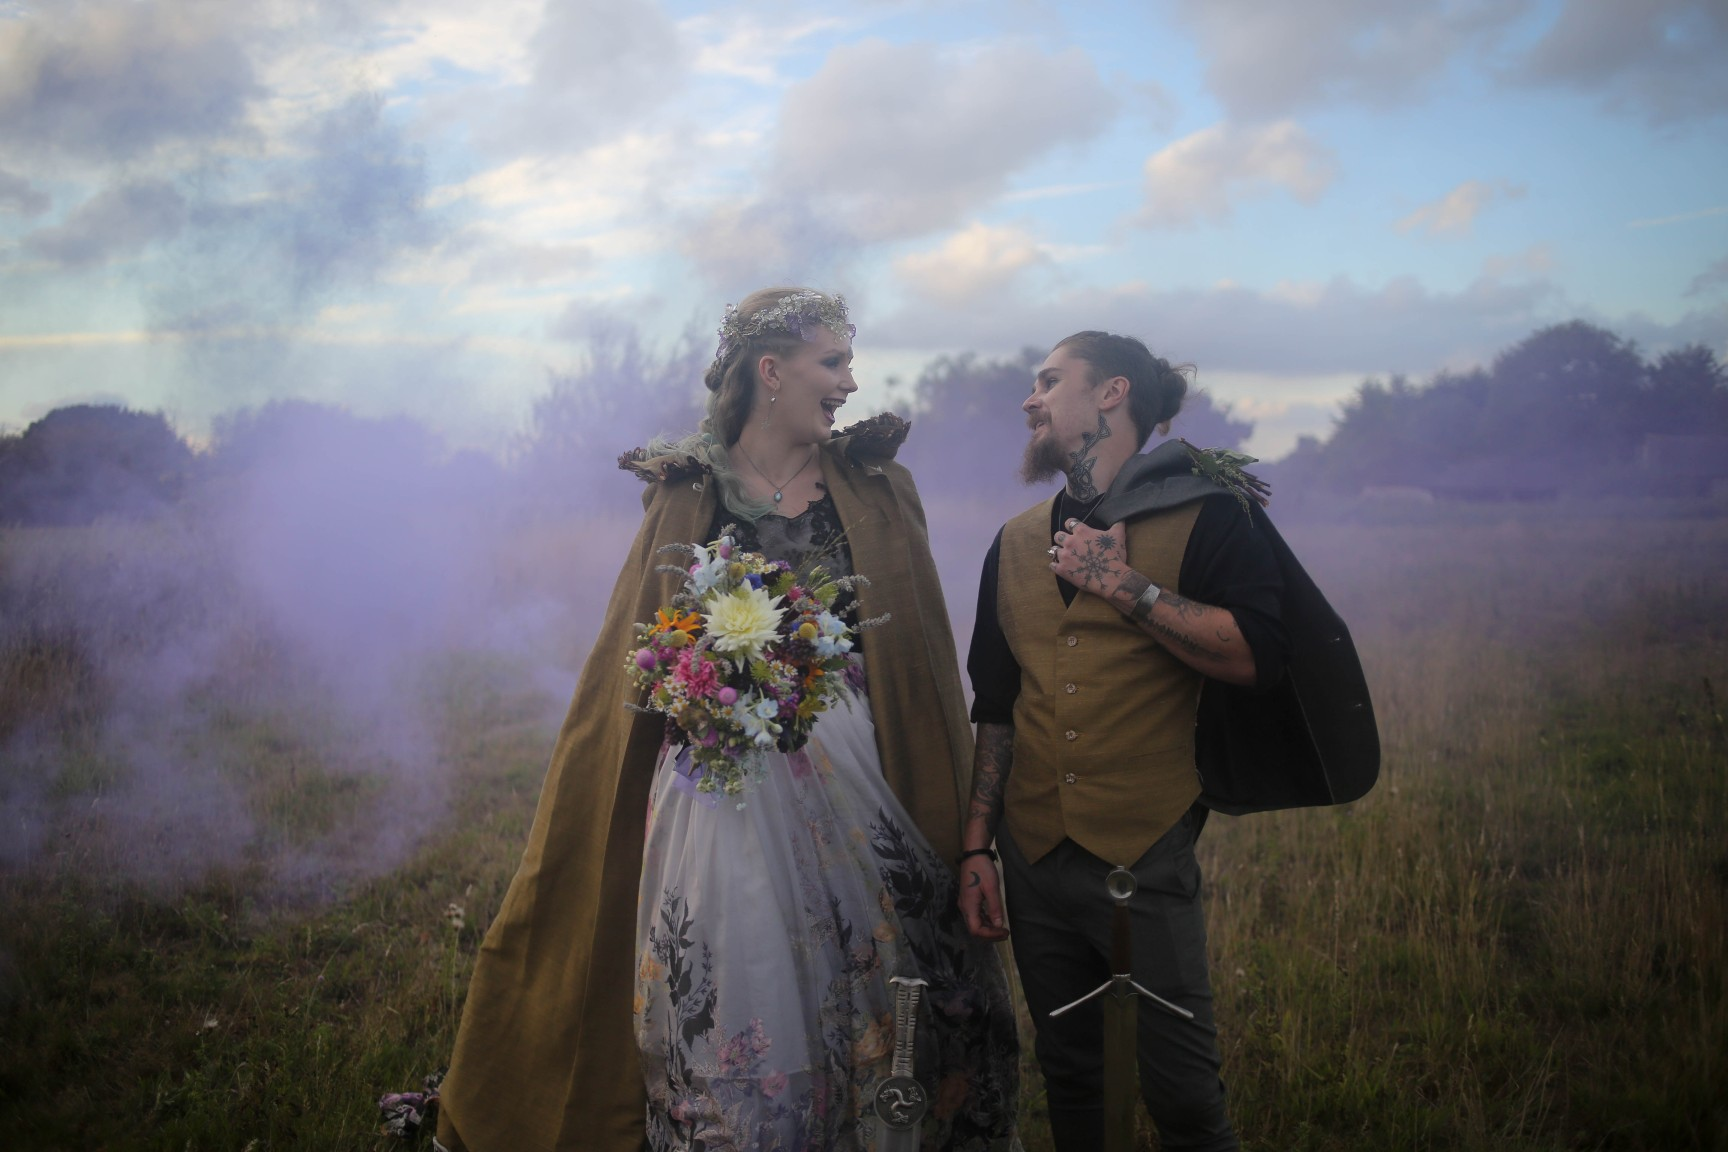 nature wedding - pagan wedding - ethereal wedding - spiritual wedding - alternative wedding - mystical wedding - quirky wedding - wedding smoke bomb photo - alternative wedding wear